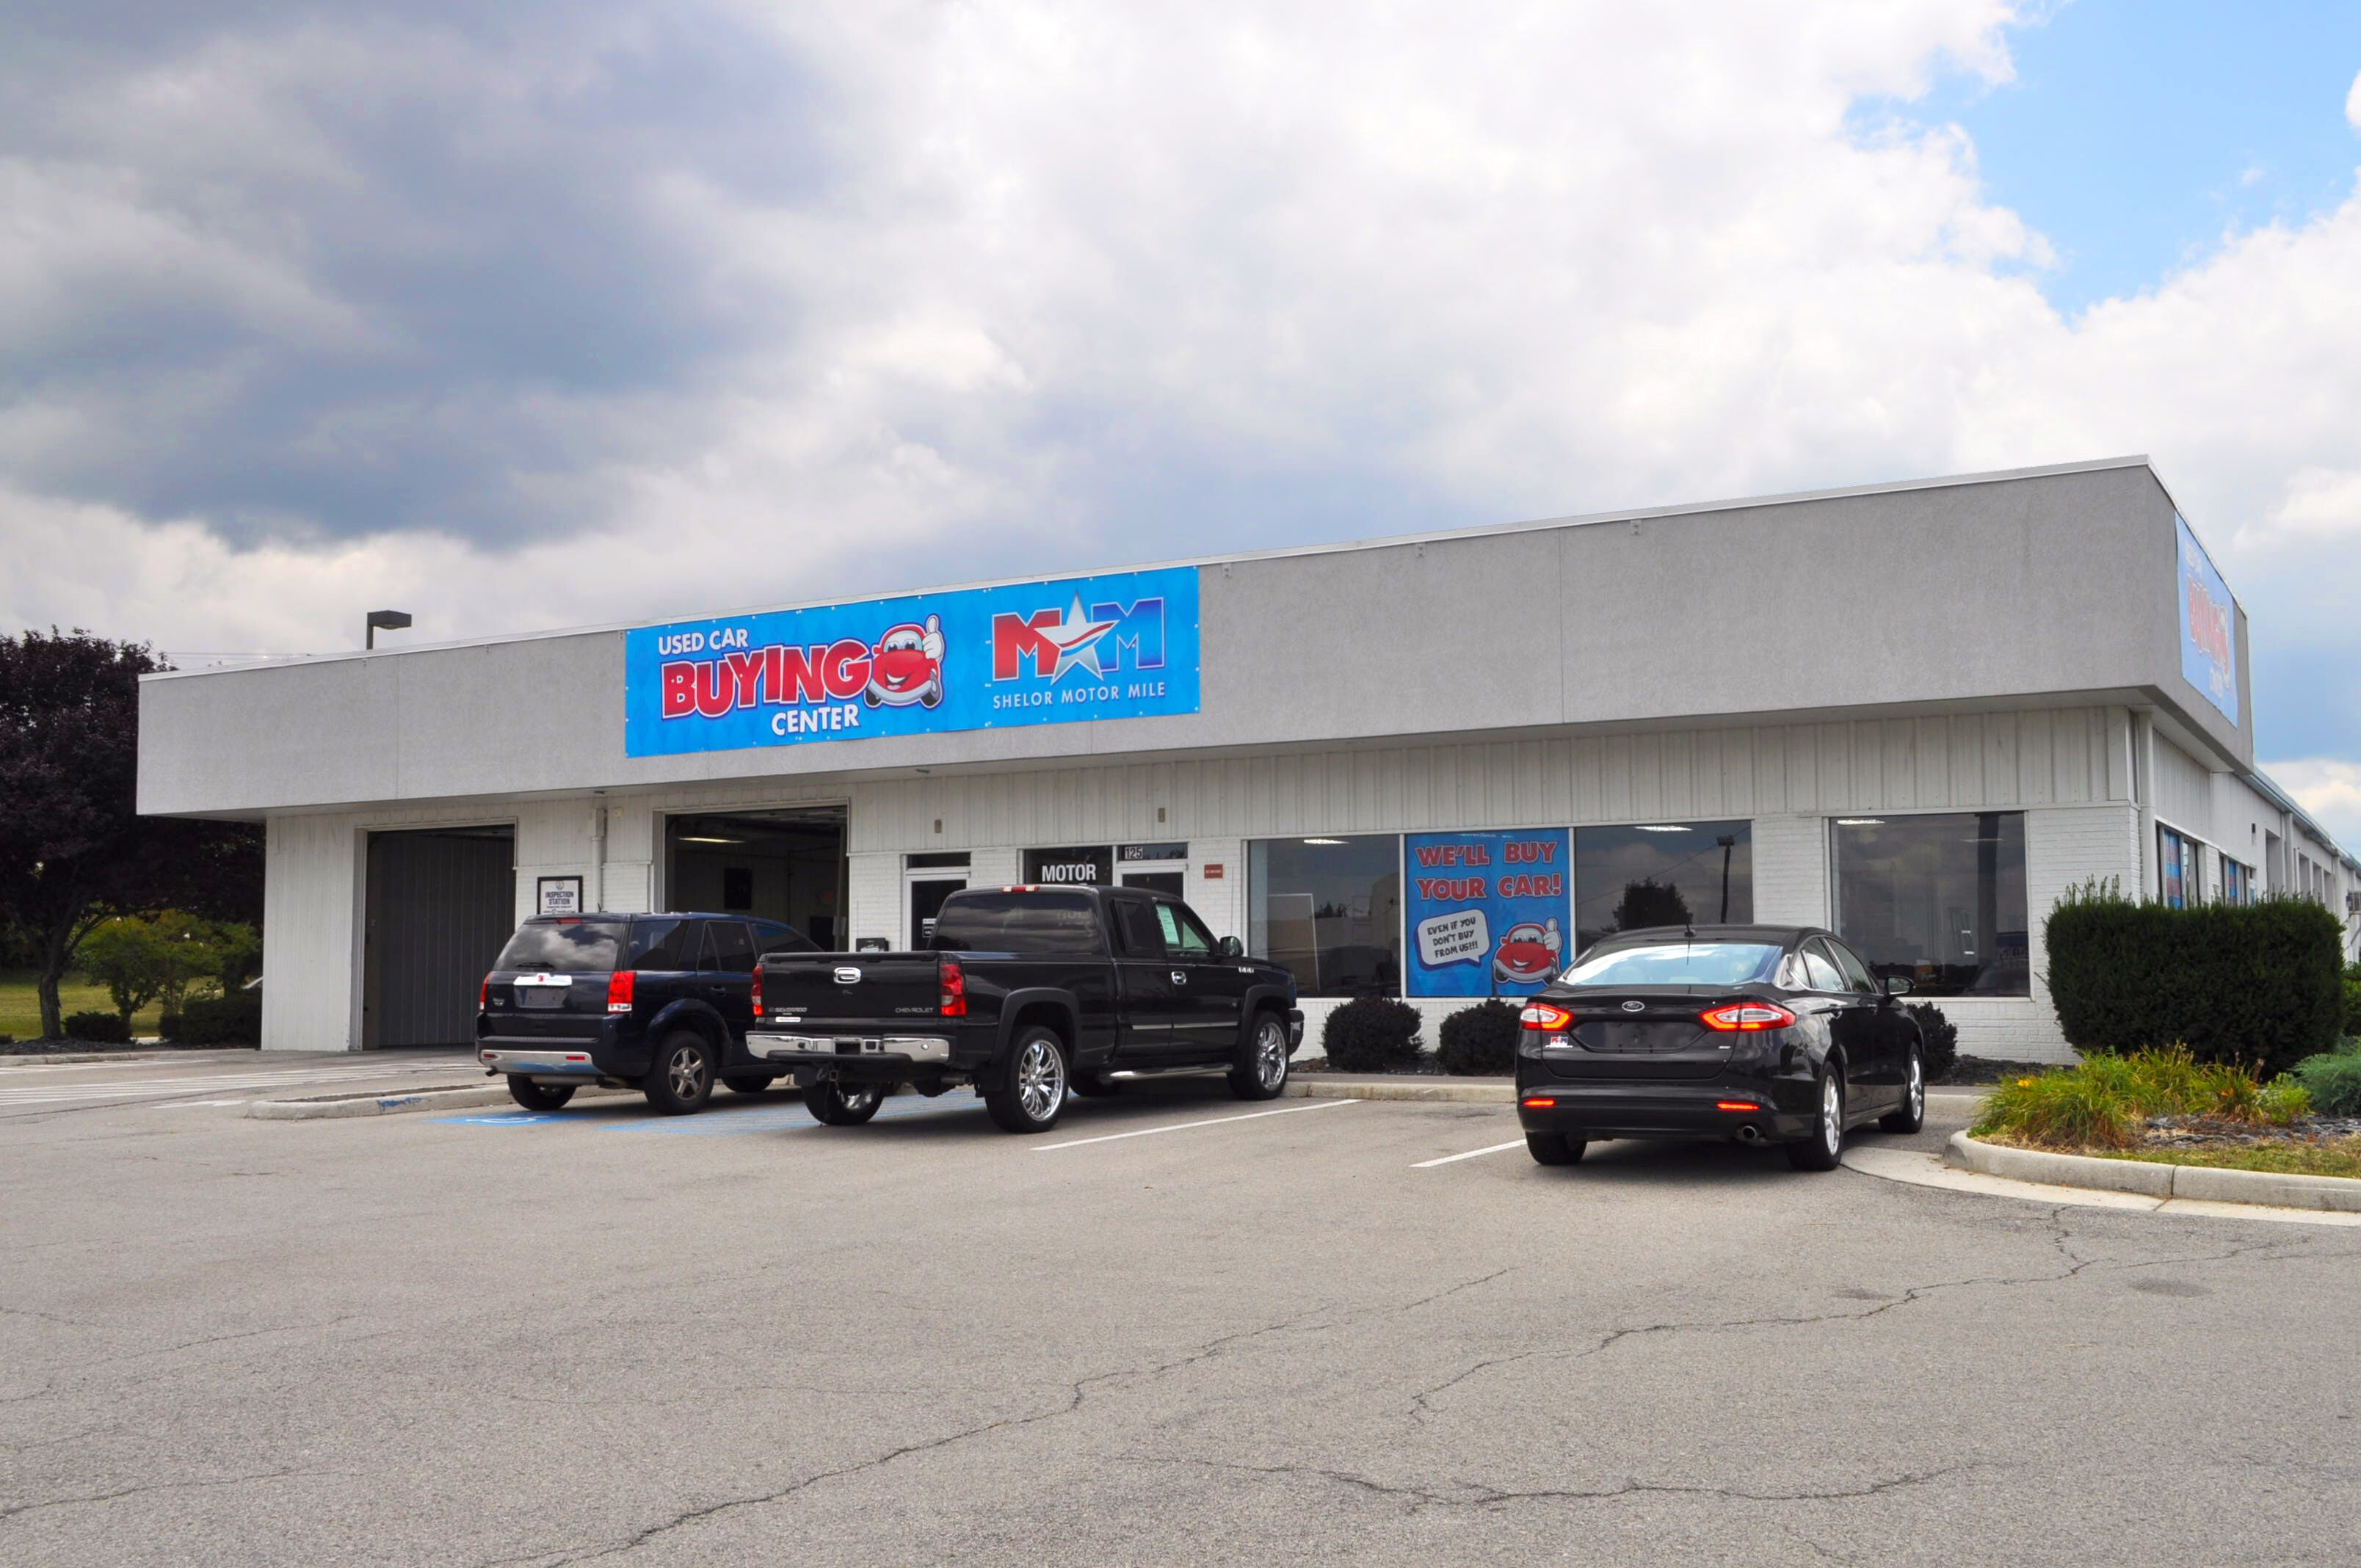 Used Car Buying Center Shelor Motor Mile